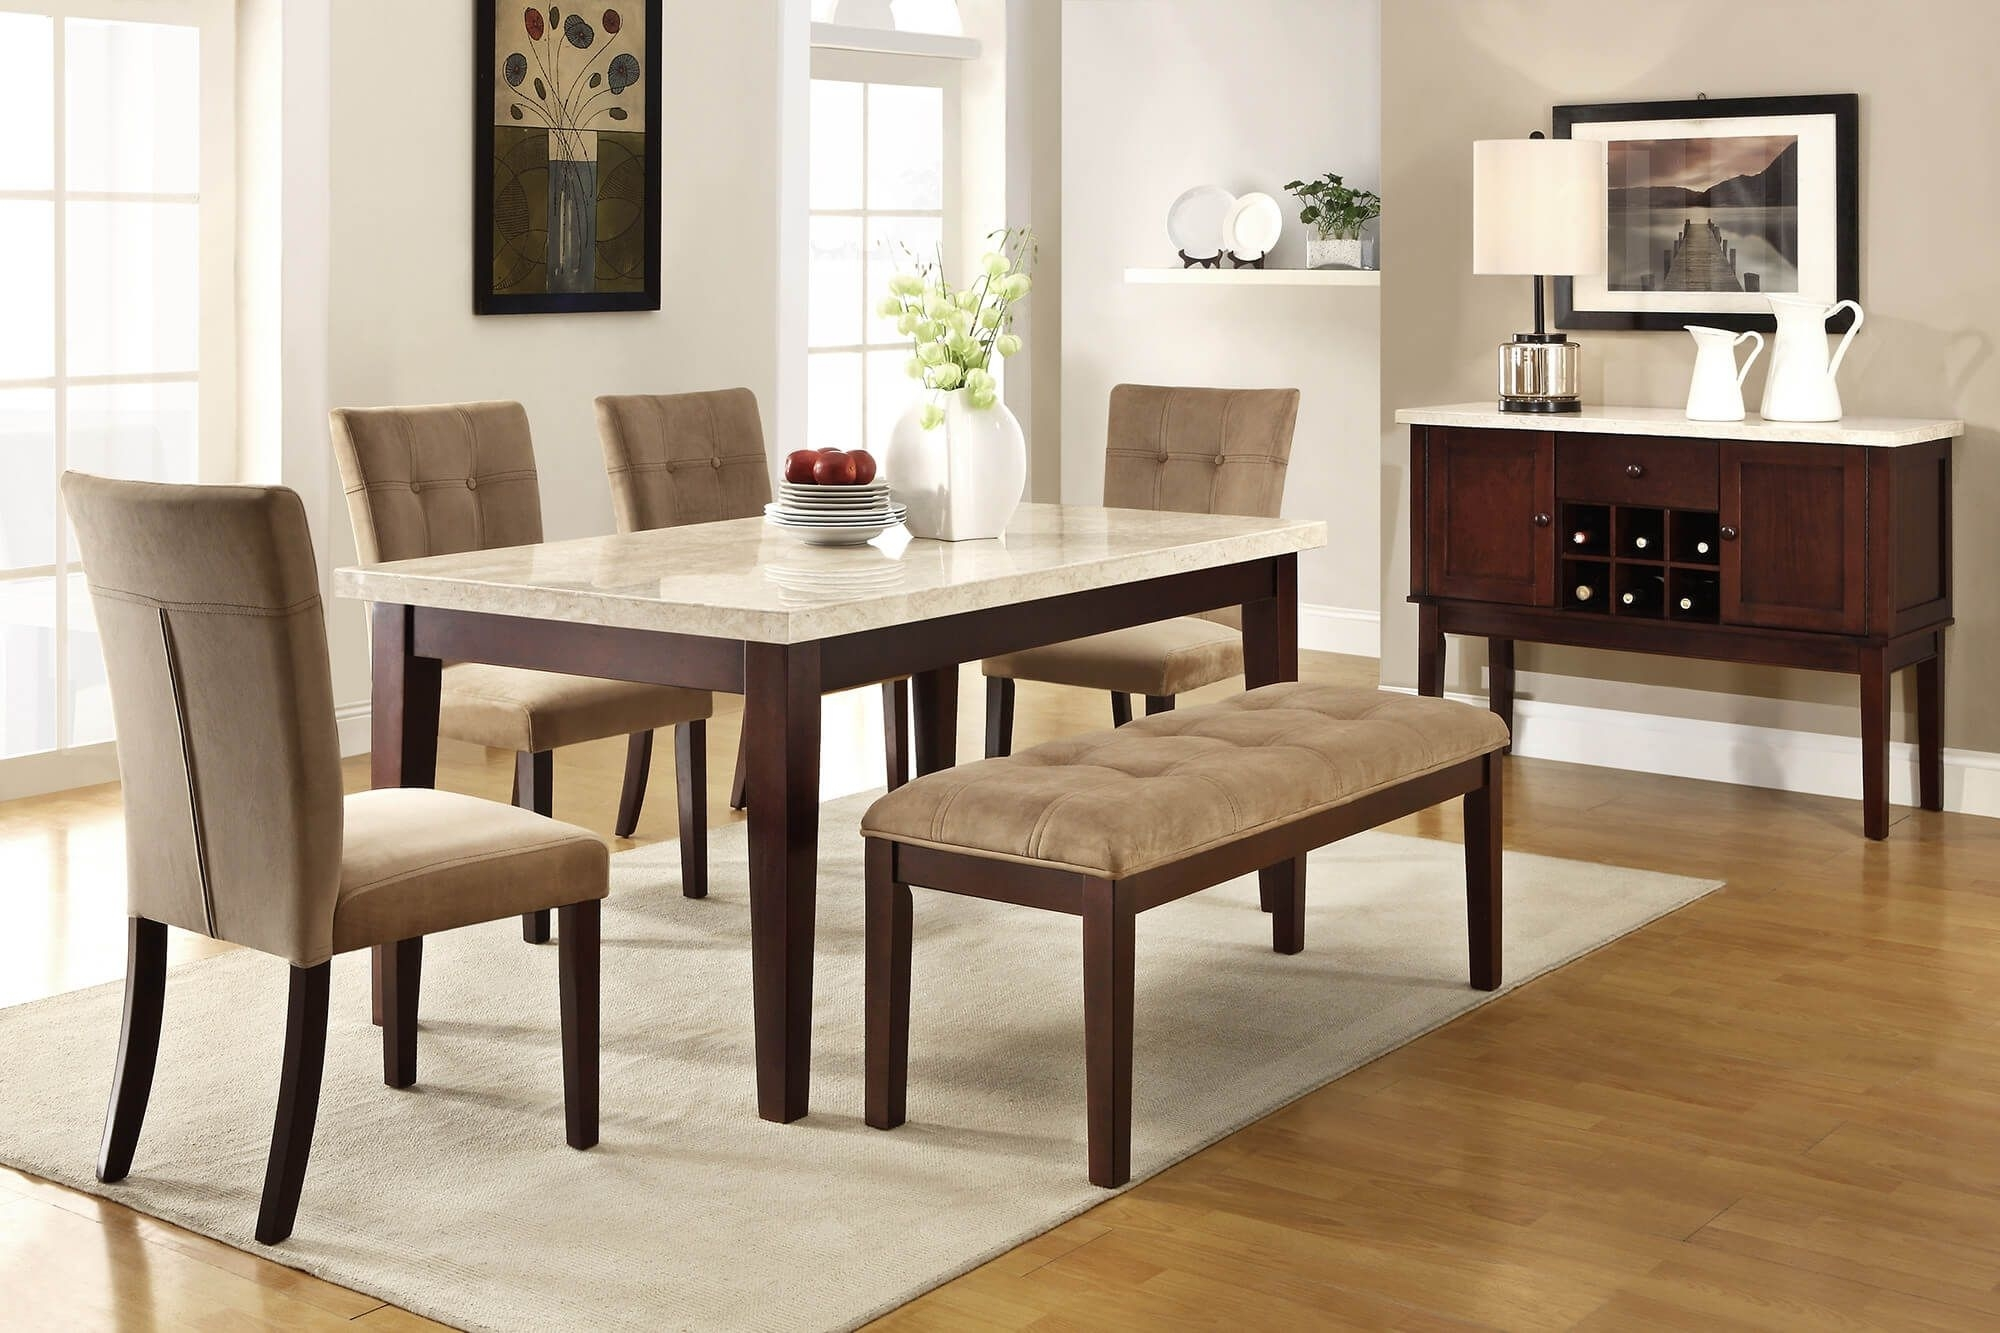 26 Dining Room Sets (Big And Small) With Bench Seating (2018) | Home With Regard To Most Recently Released Palazzo 9 Piece Dining Sets With Pearson White Side Chairs (View 6 of 20)